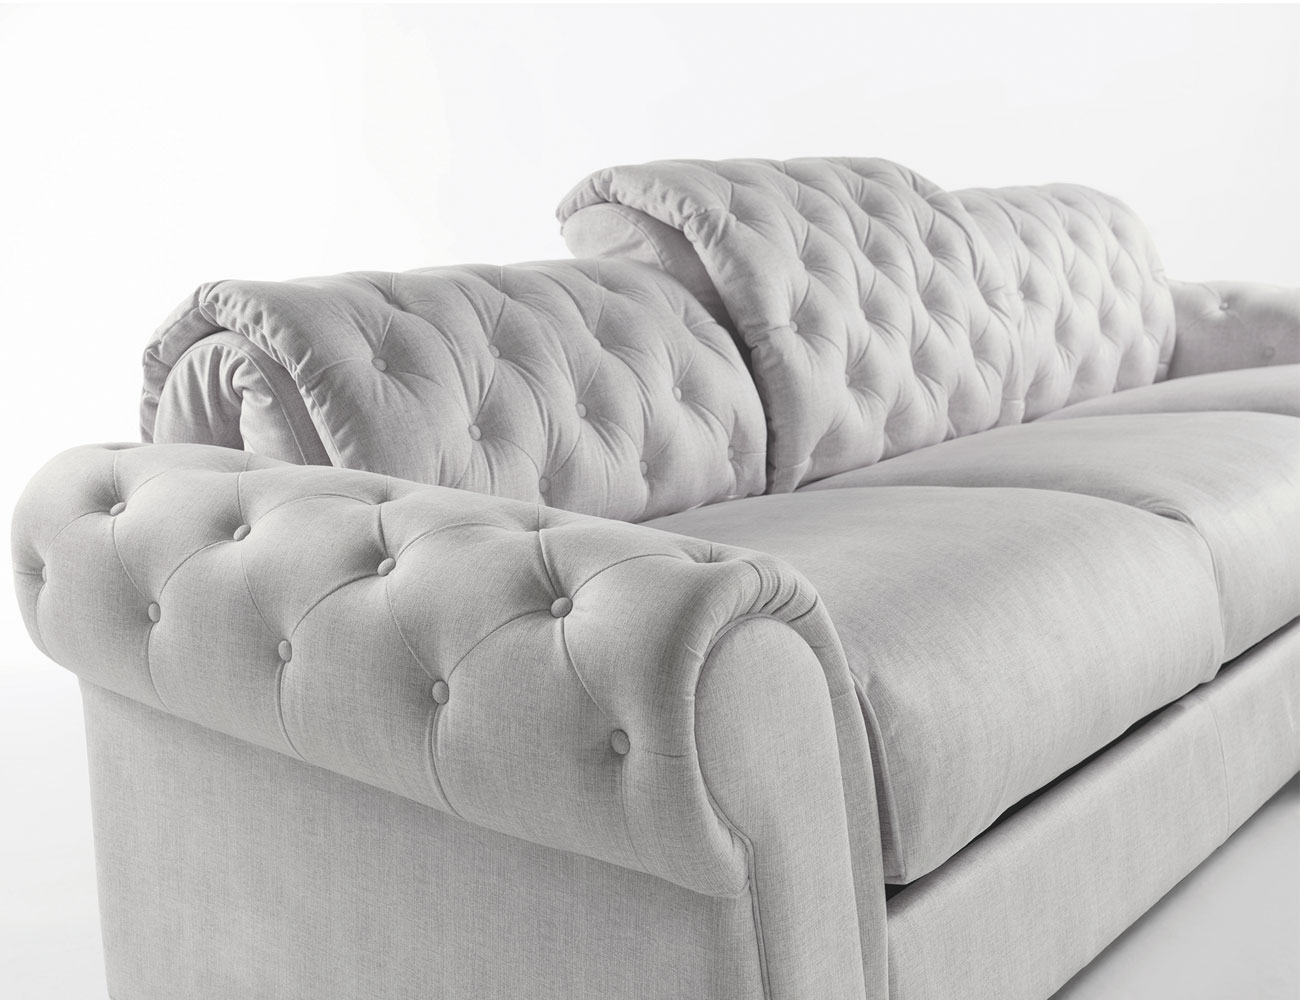 Sofa chaiselongue gran lujo decorativo capitone blanco tela 141